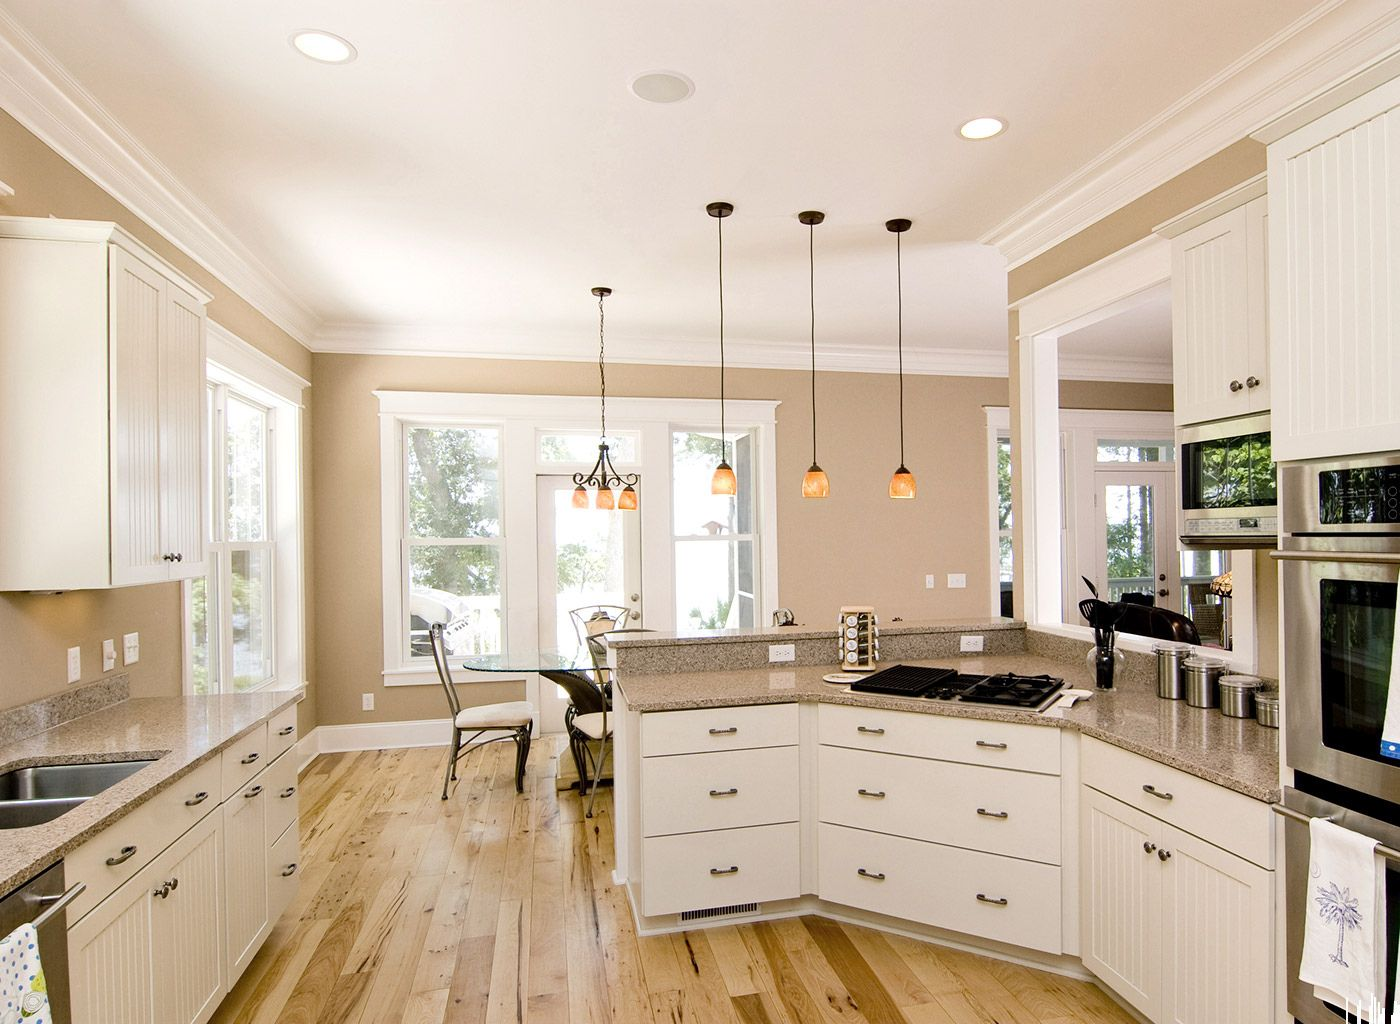 100 Tan Paint Colors For Kitchen Cabinet Ideas Kitchens Check More At Http